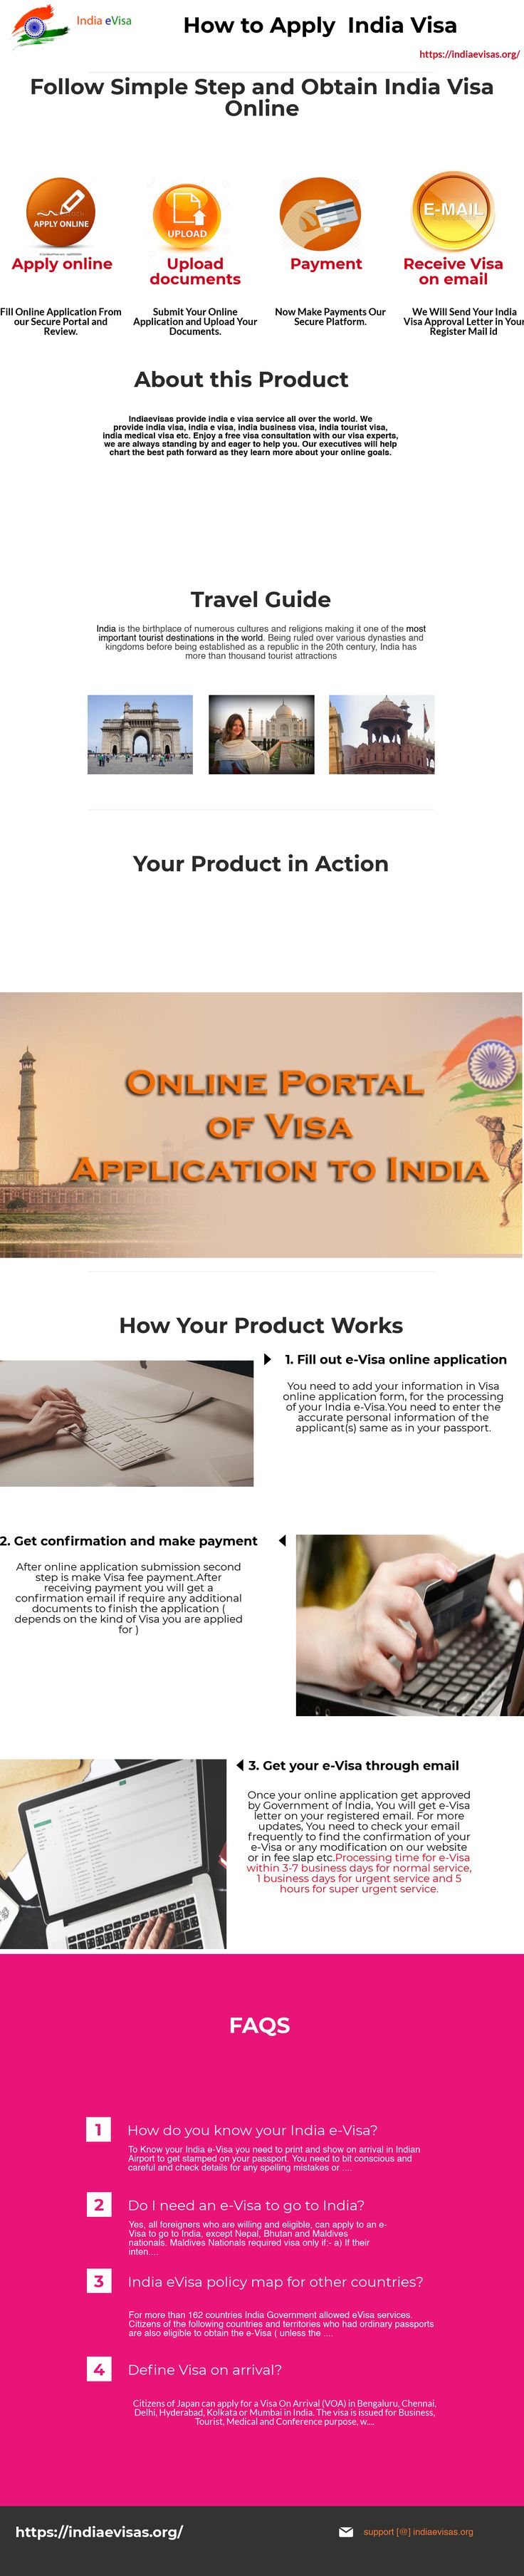 Best online portal of visa application to india. Follow